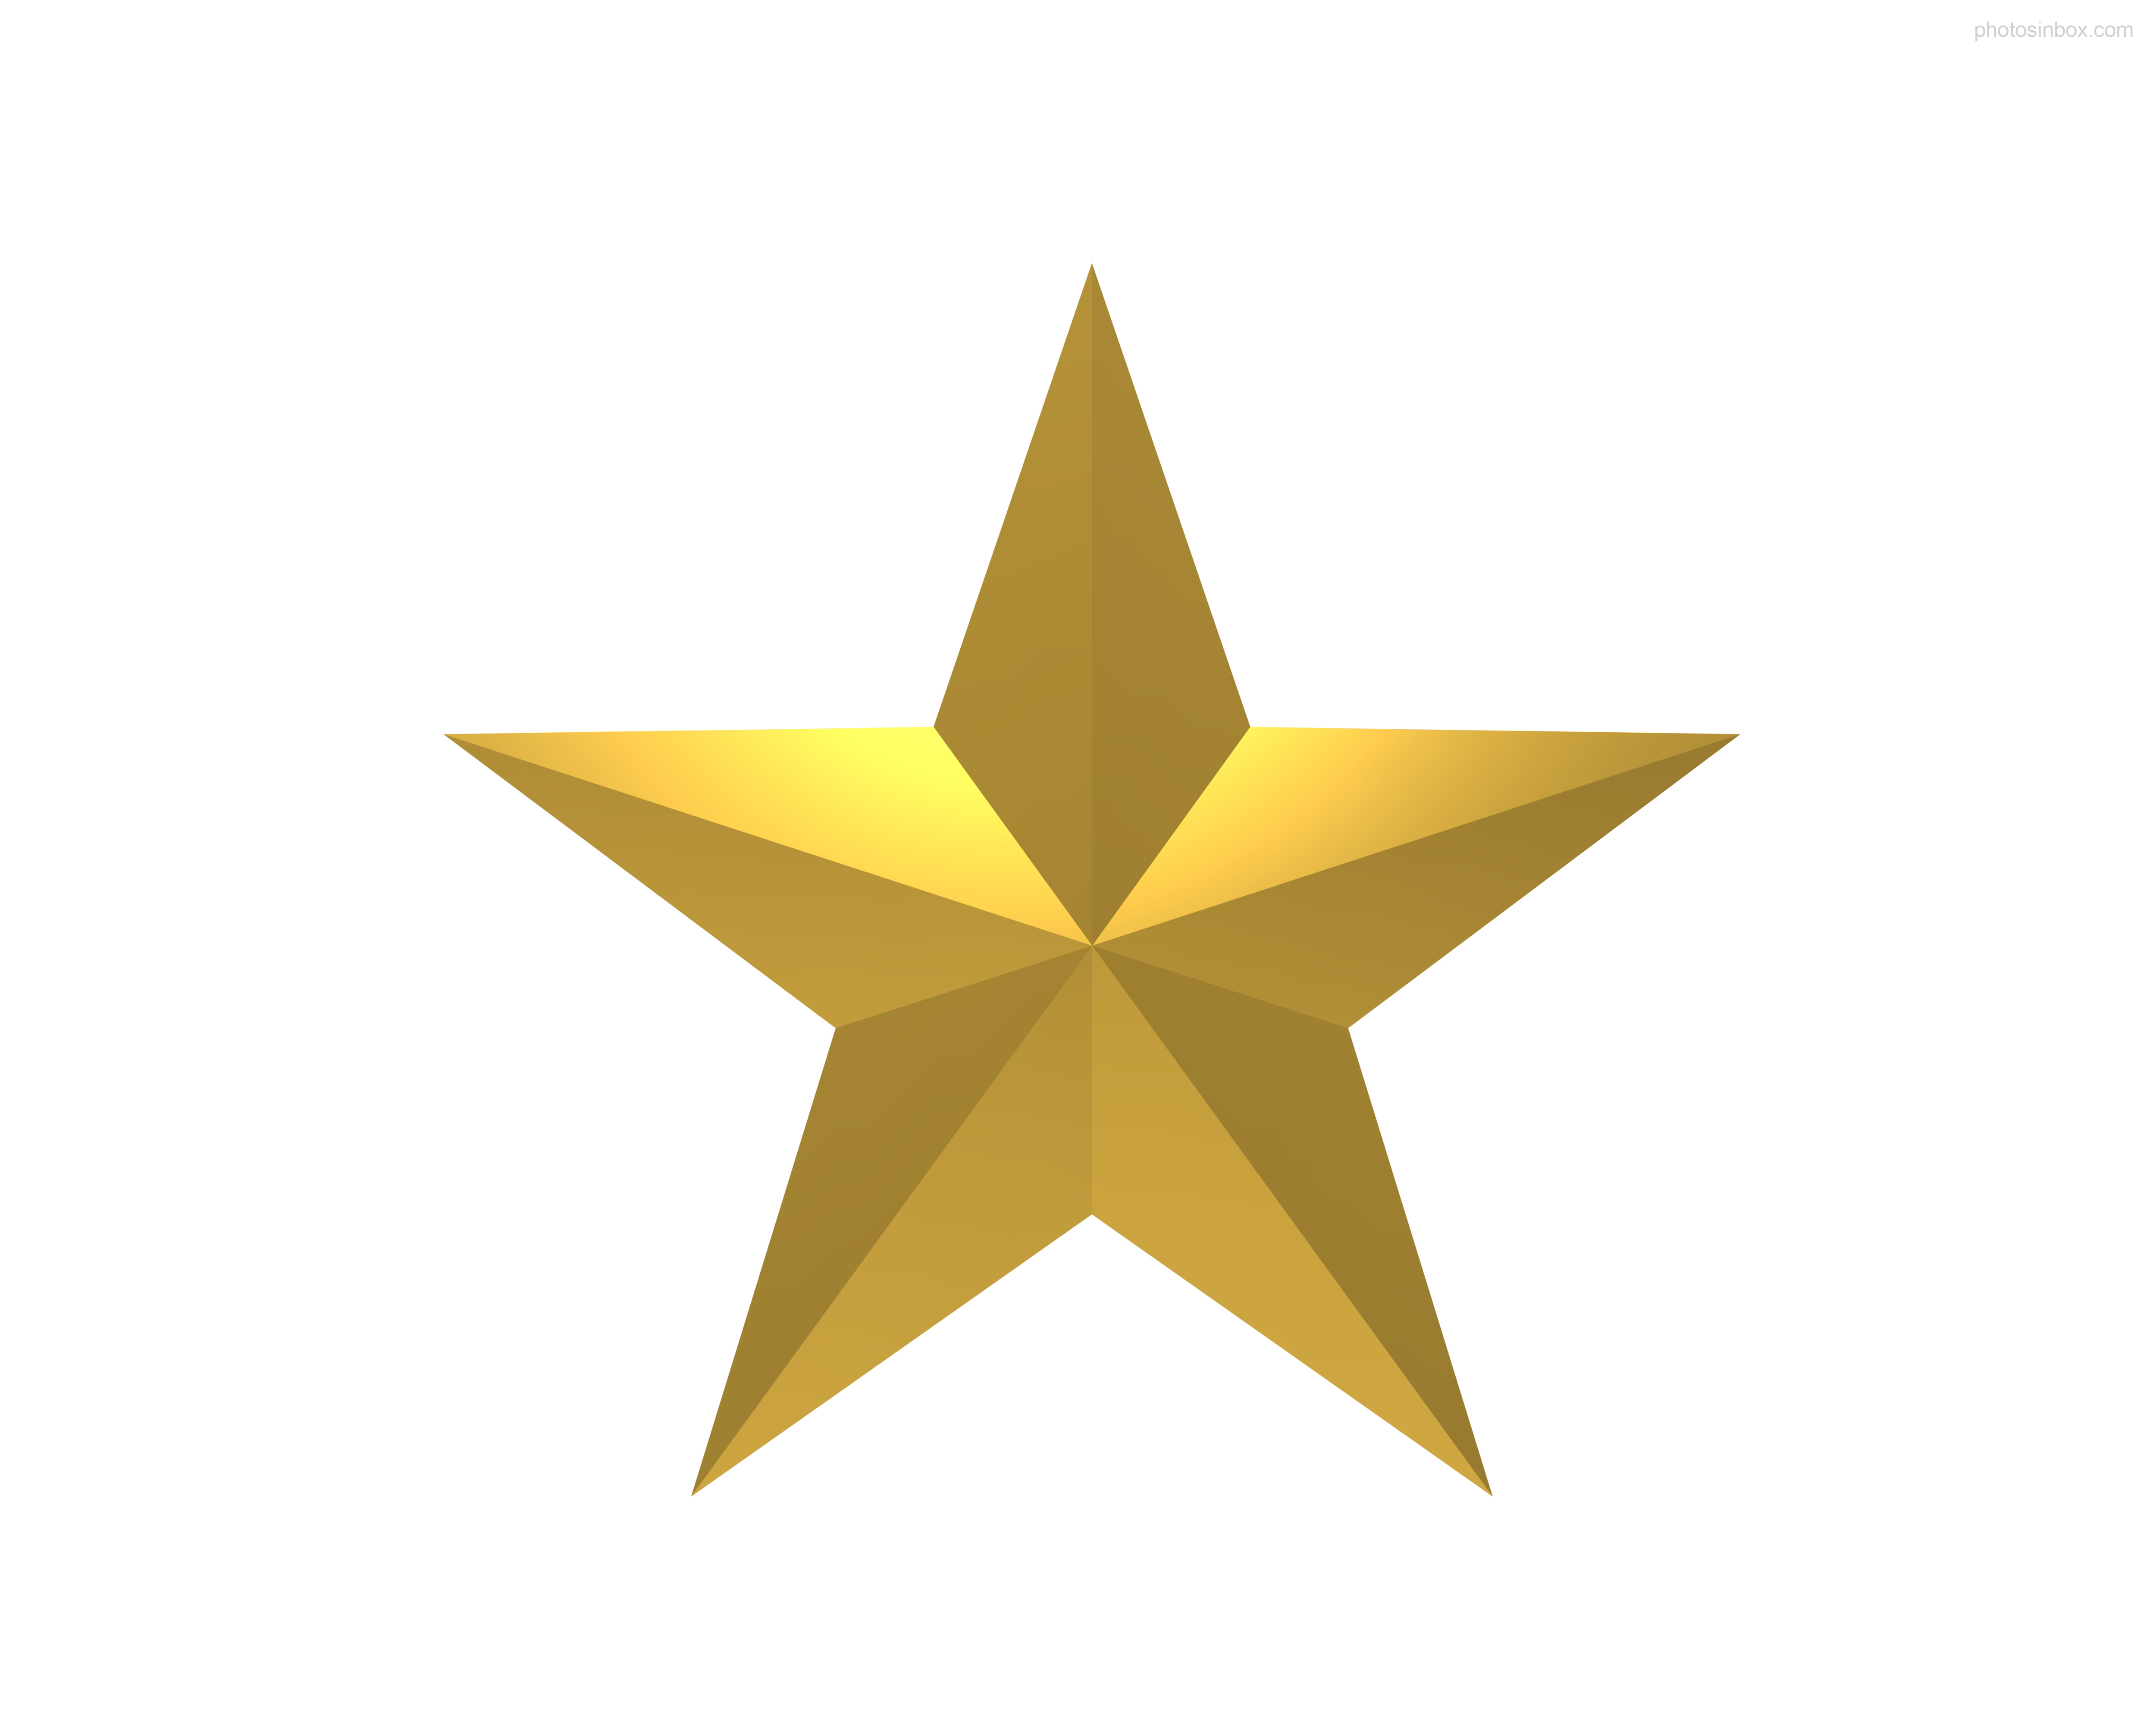 gold-star-clipart-no-background-yikexa5nt